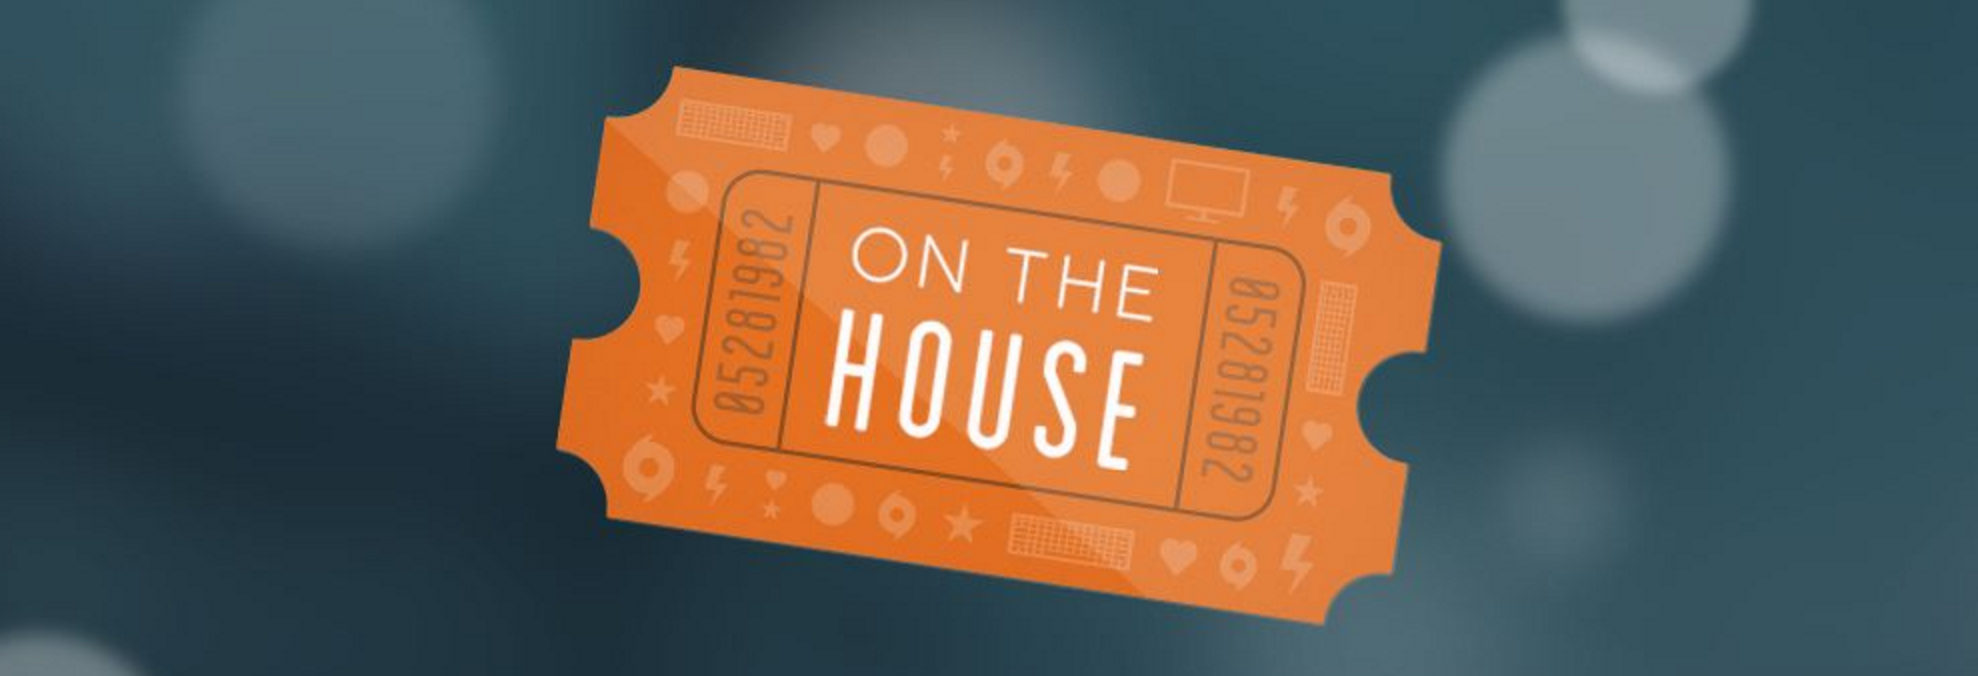 on-the-house